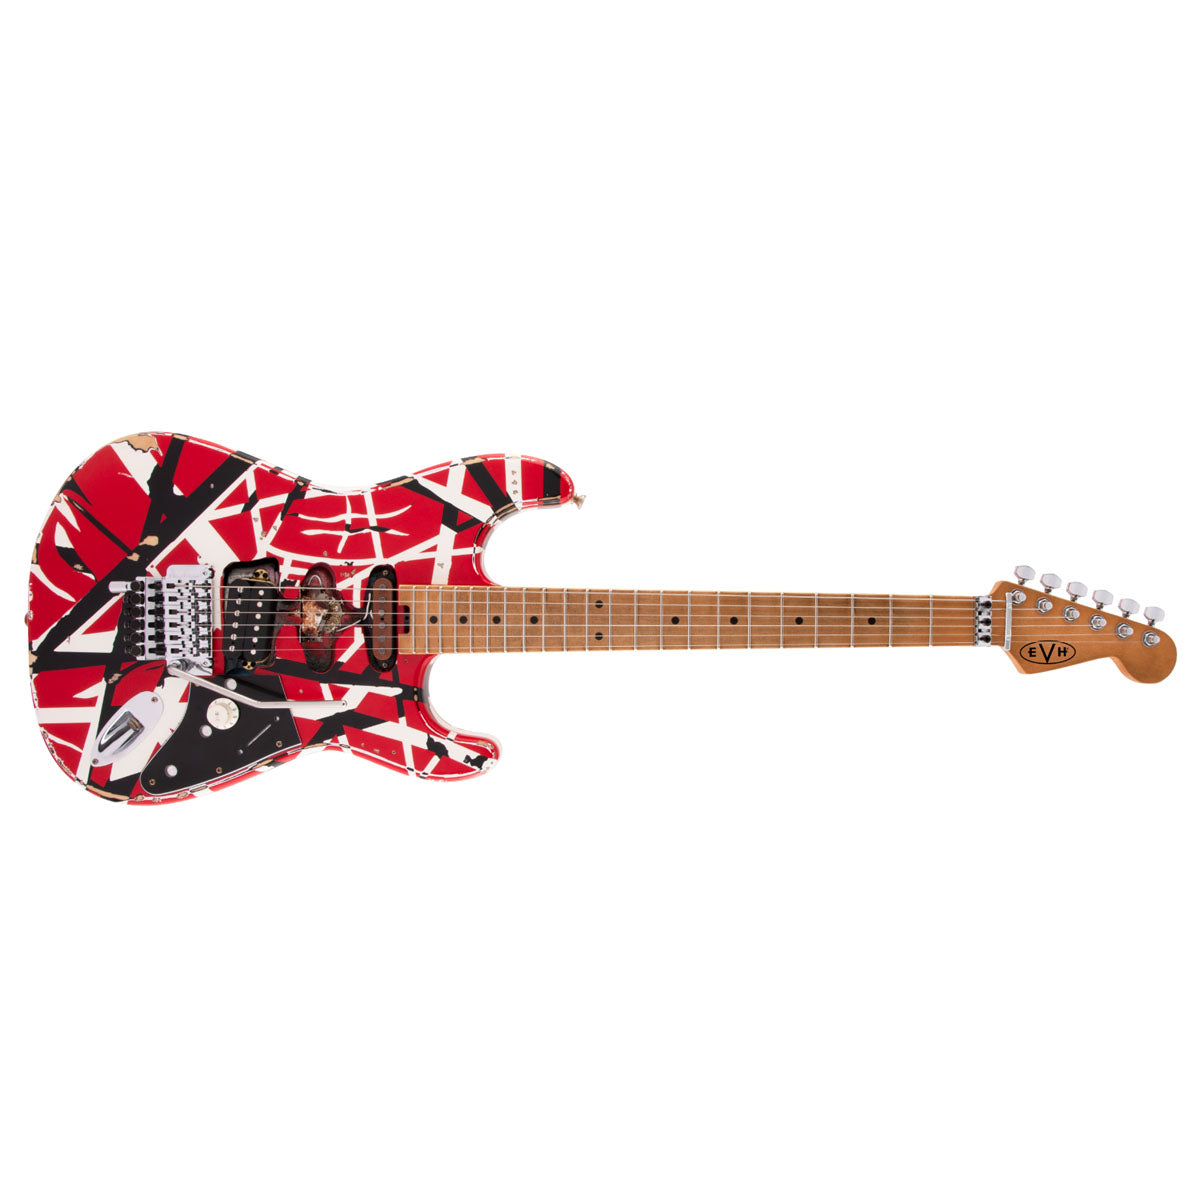 EVH Striped Series Frankie Electric Guitar Red w/ Black Stripes Relic - 5107900503